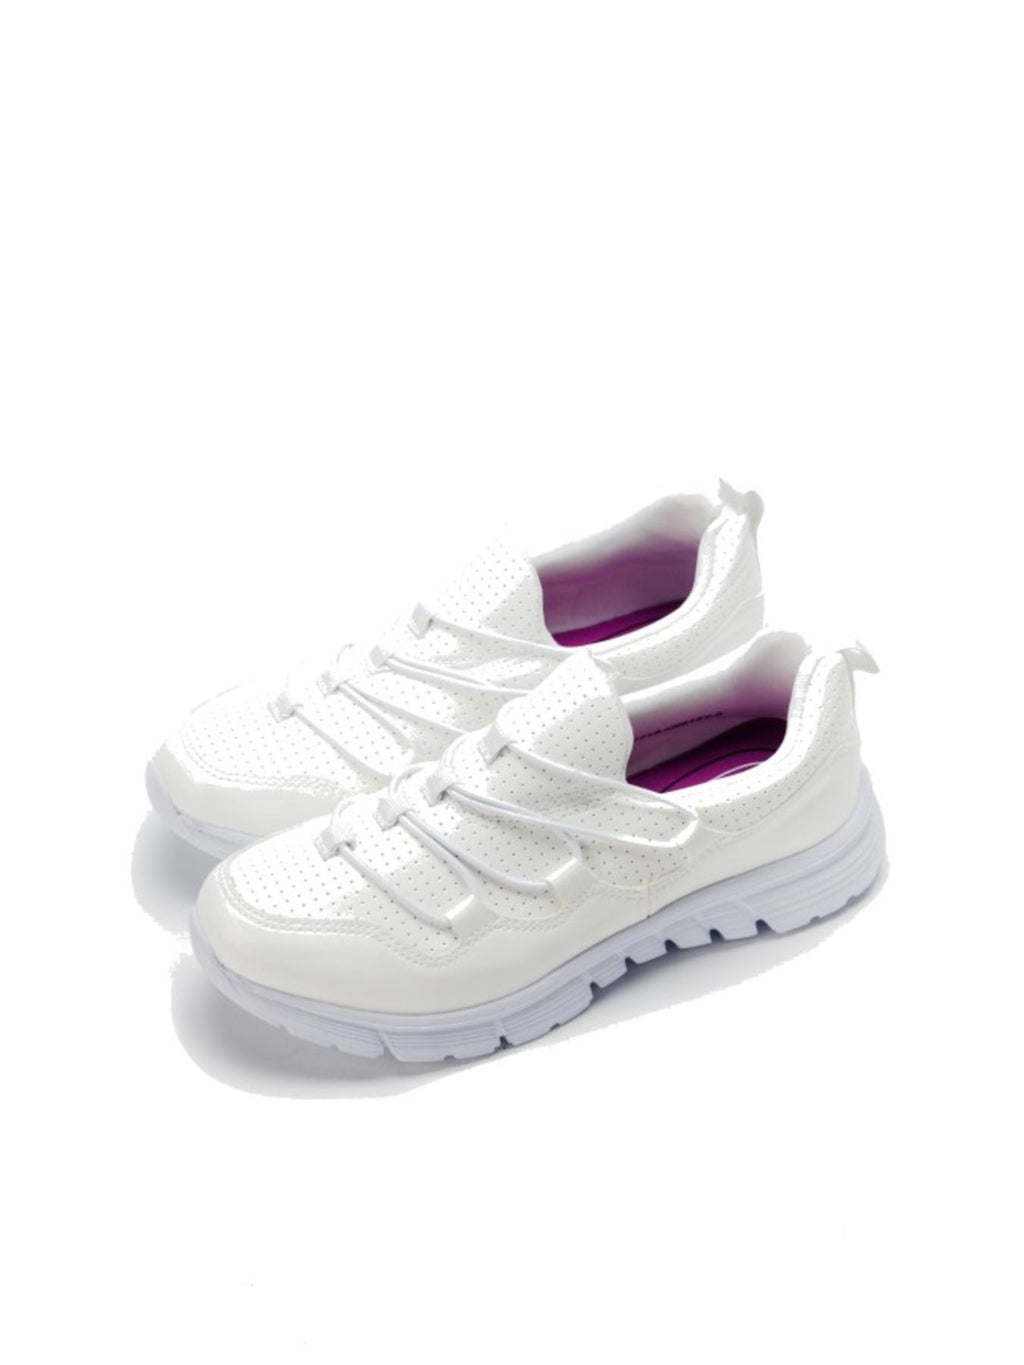 Larrie White Stretchable Basic Sporty Sneakers